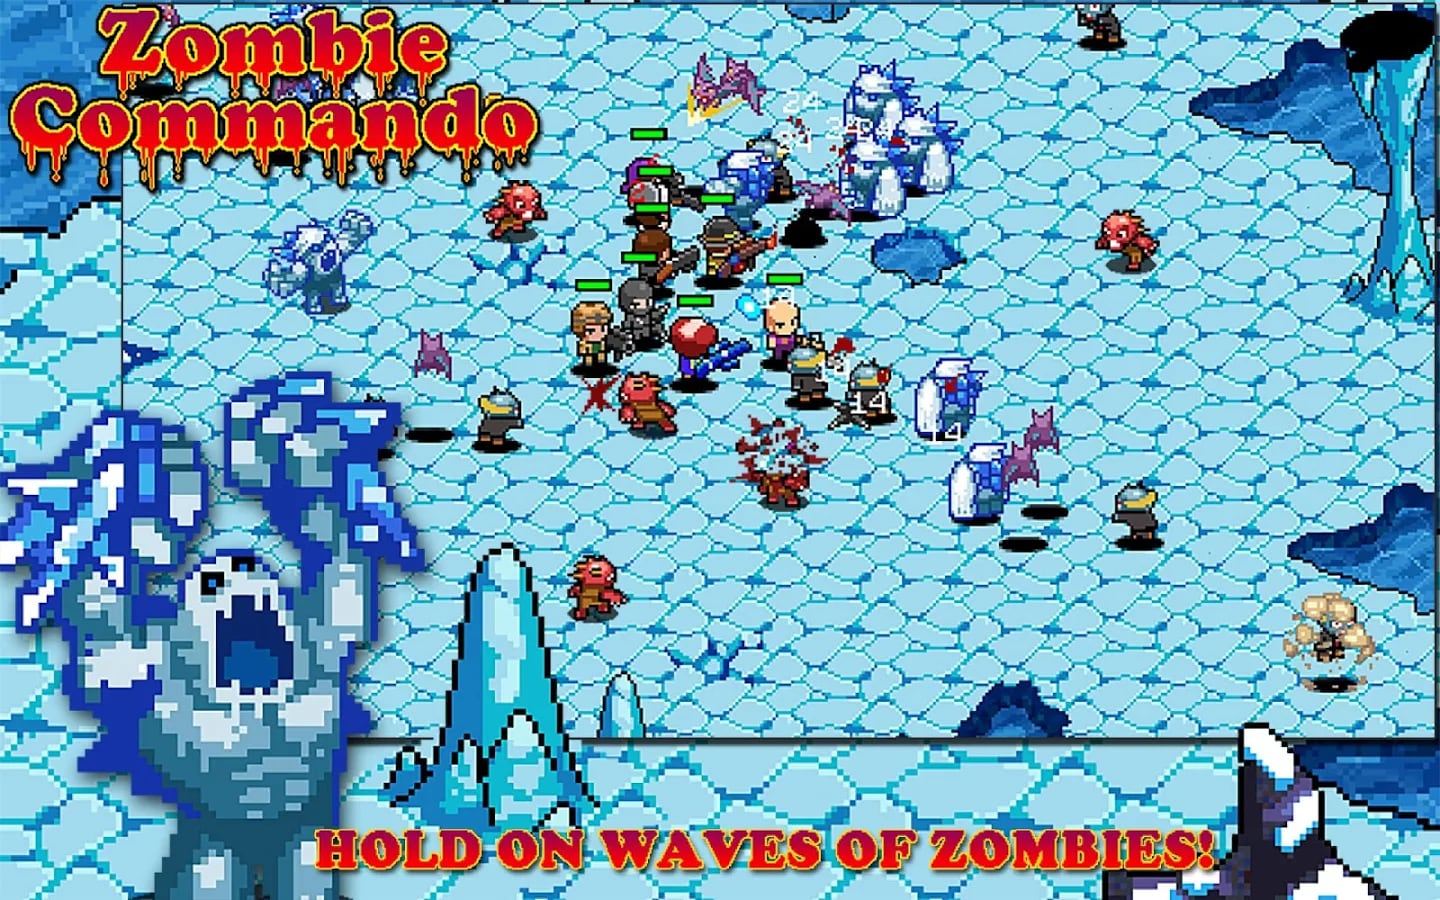 Zombie Commando Android (4)